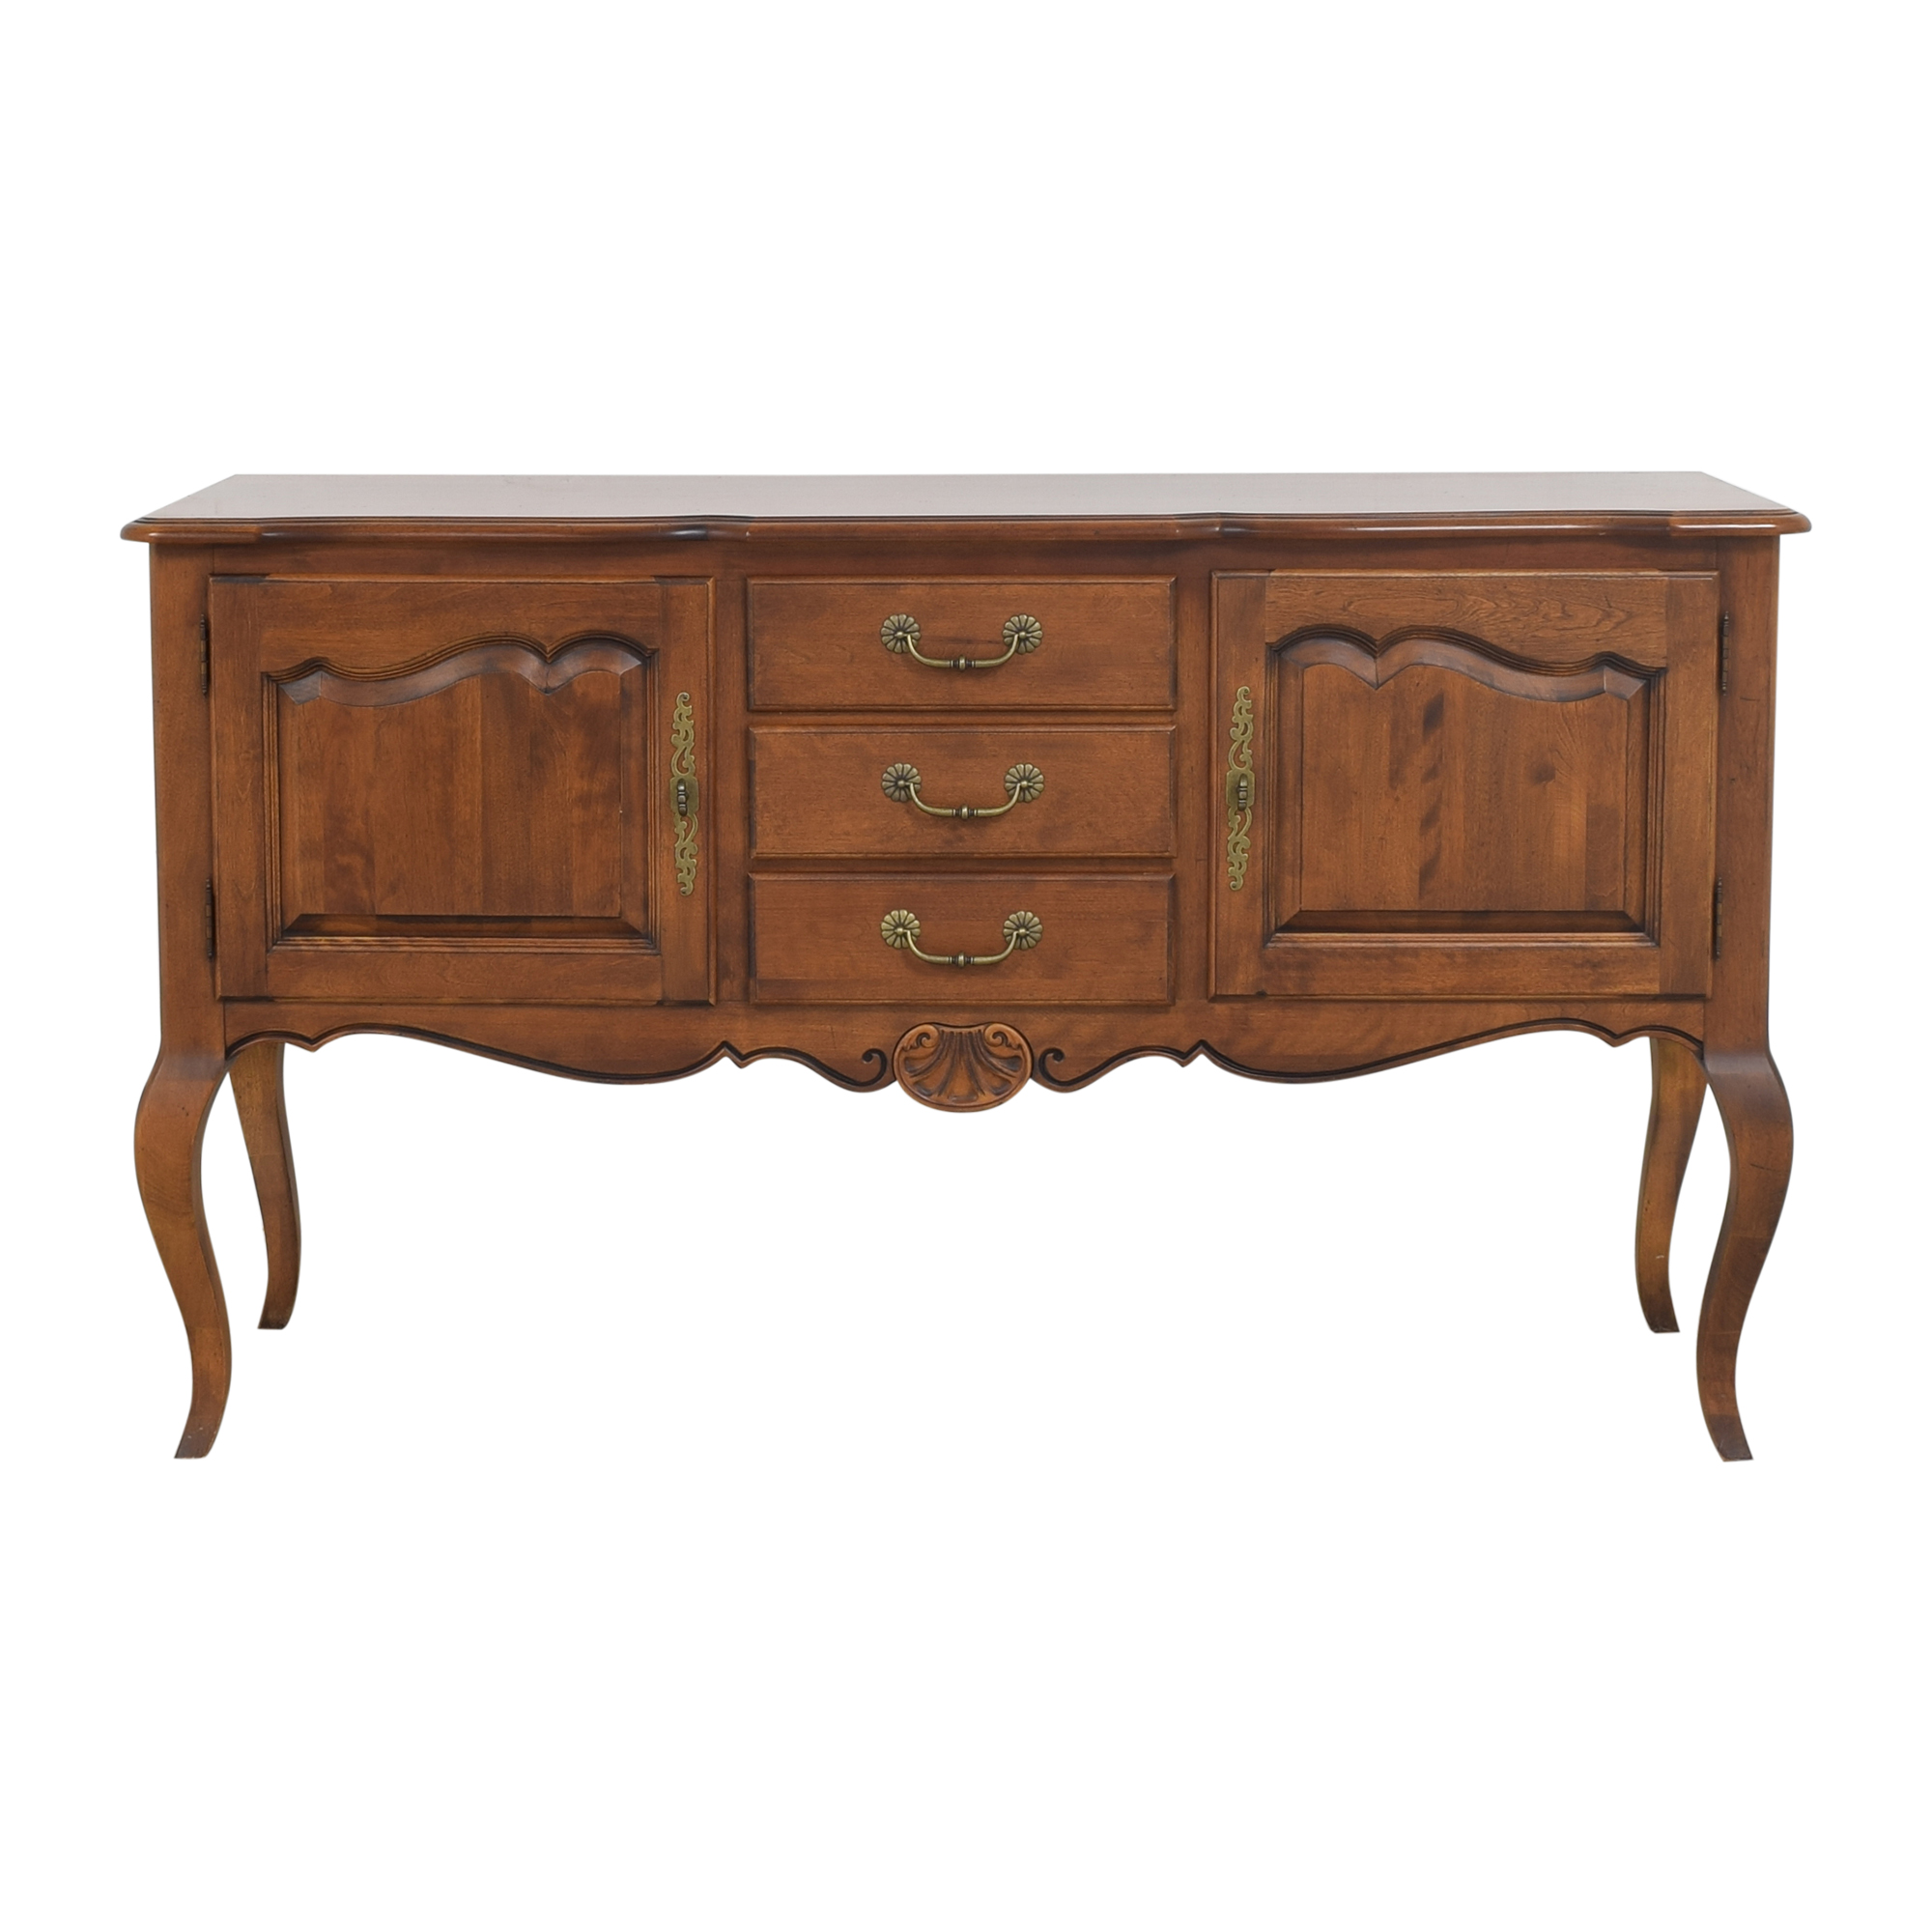 Ethan Allen Ethan Allen Country French Sideboard nyc